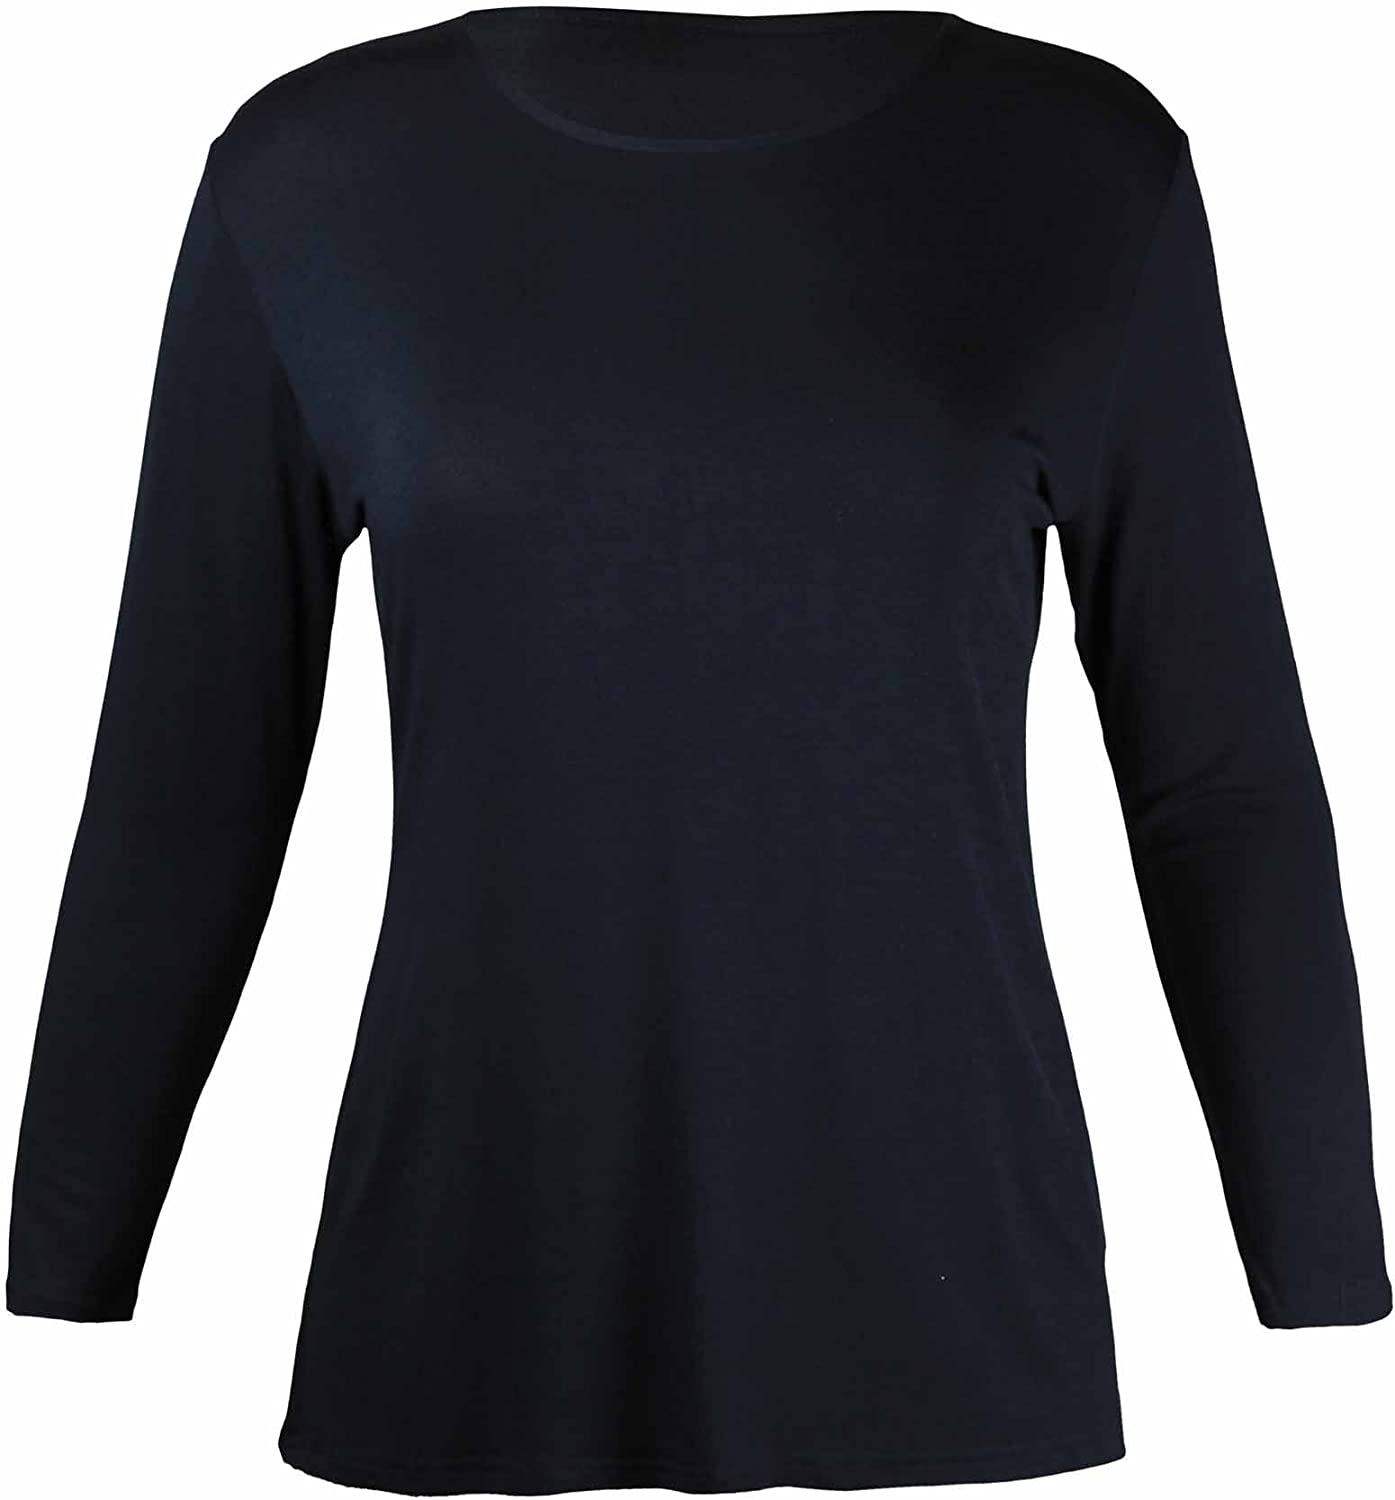 Ladies Plain Long Sleeve Round Neck T Shirt Womens Basic Stretch Top Plus Size